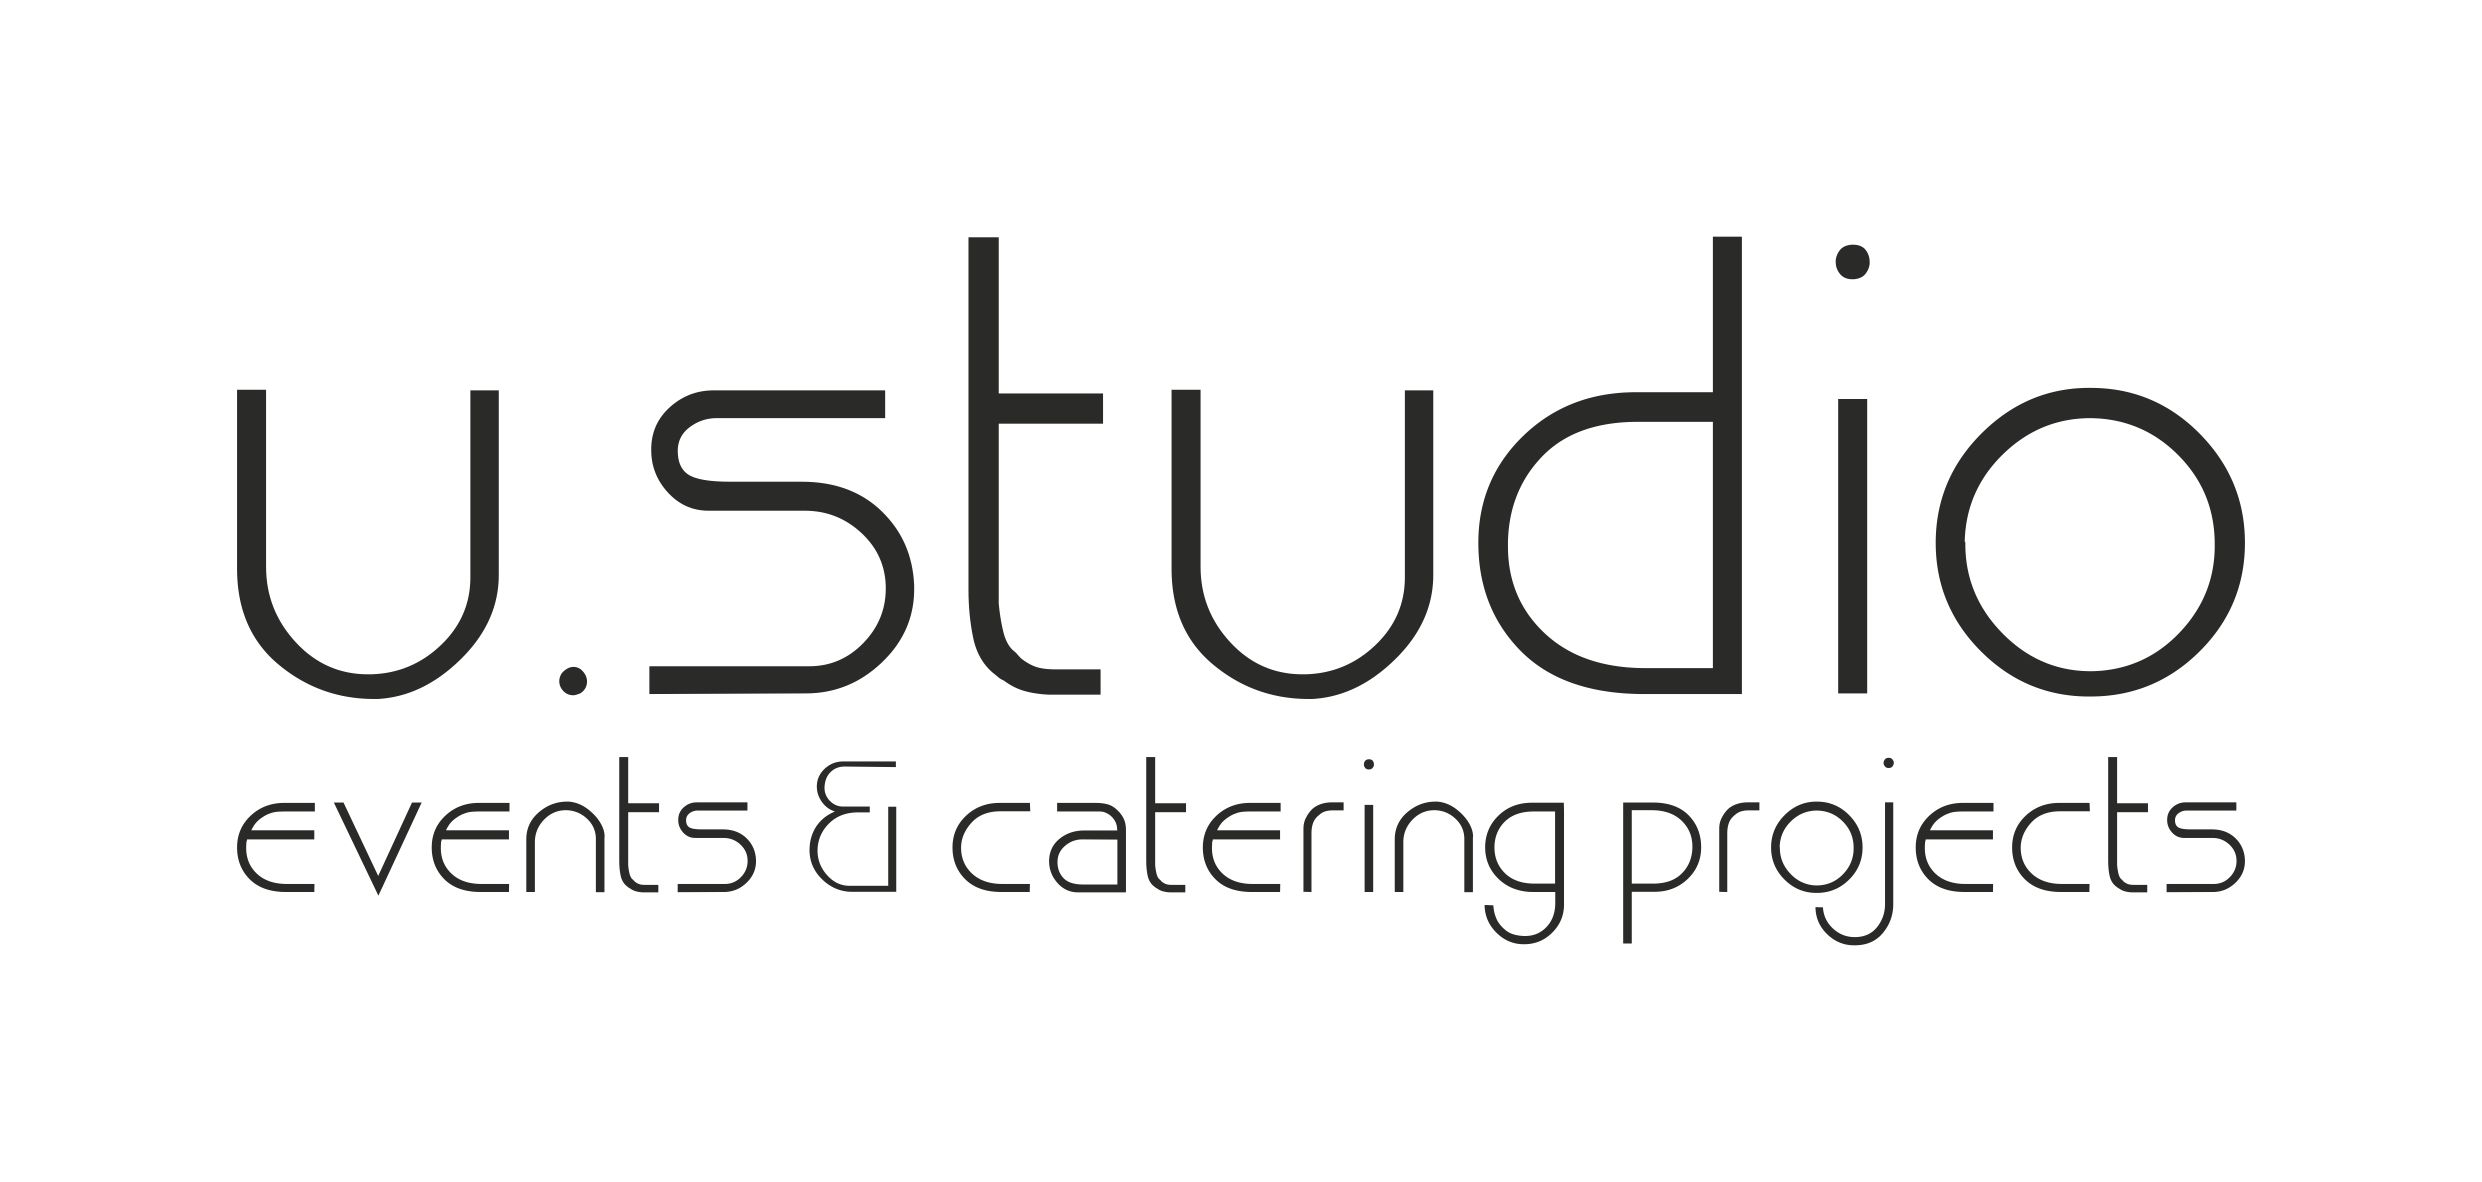 ustudio-events.catering projects